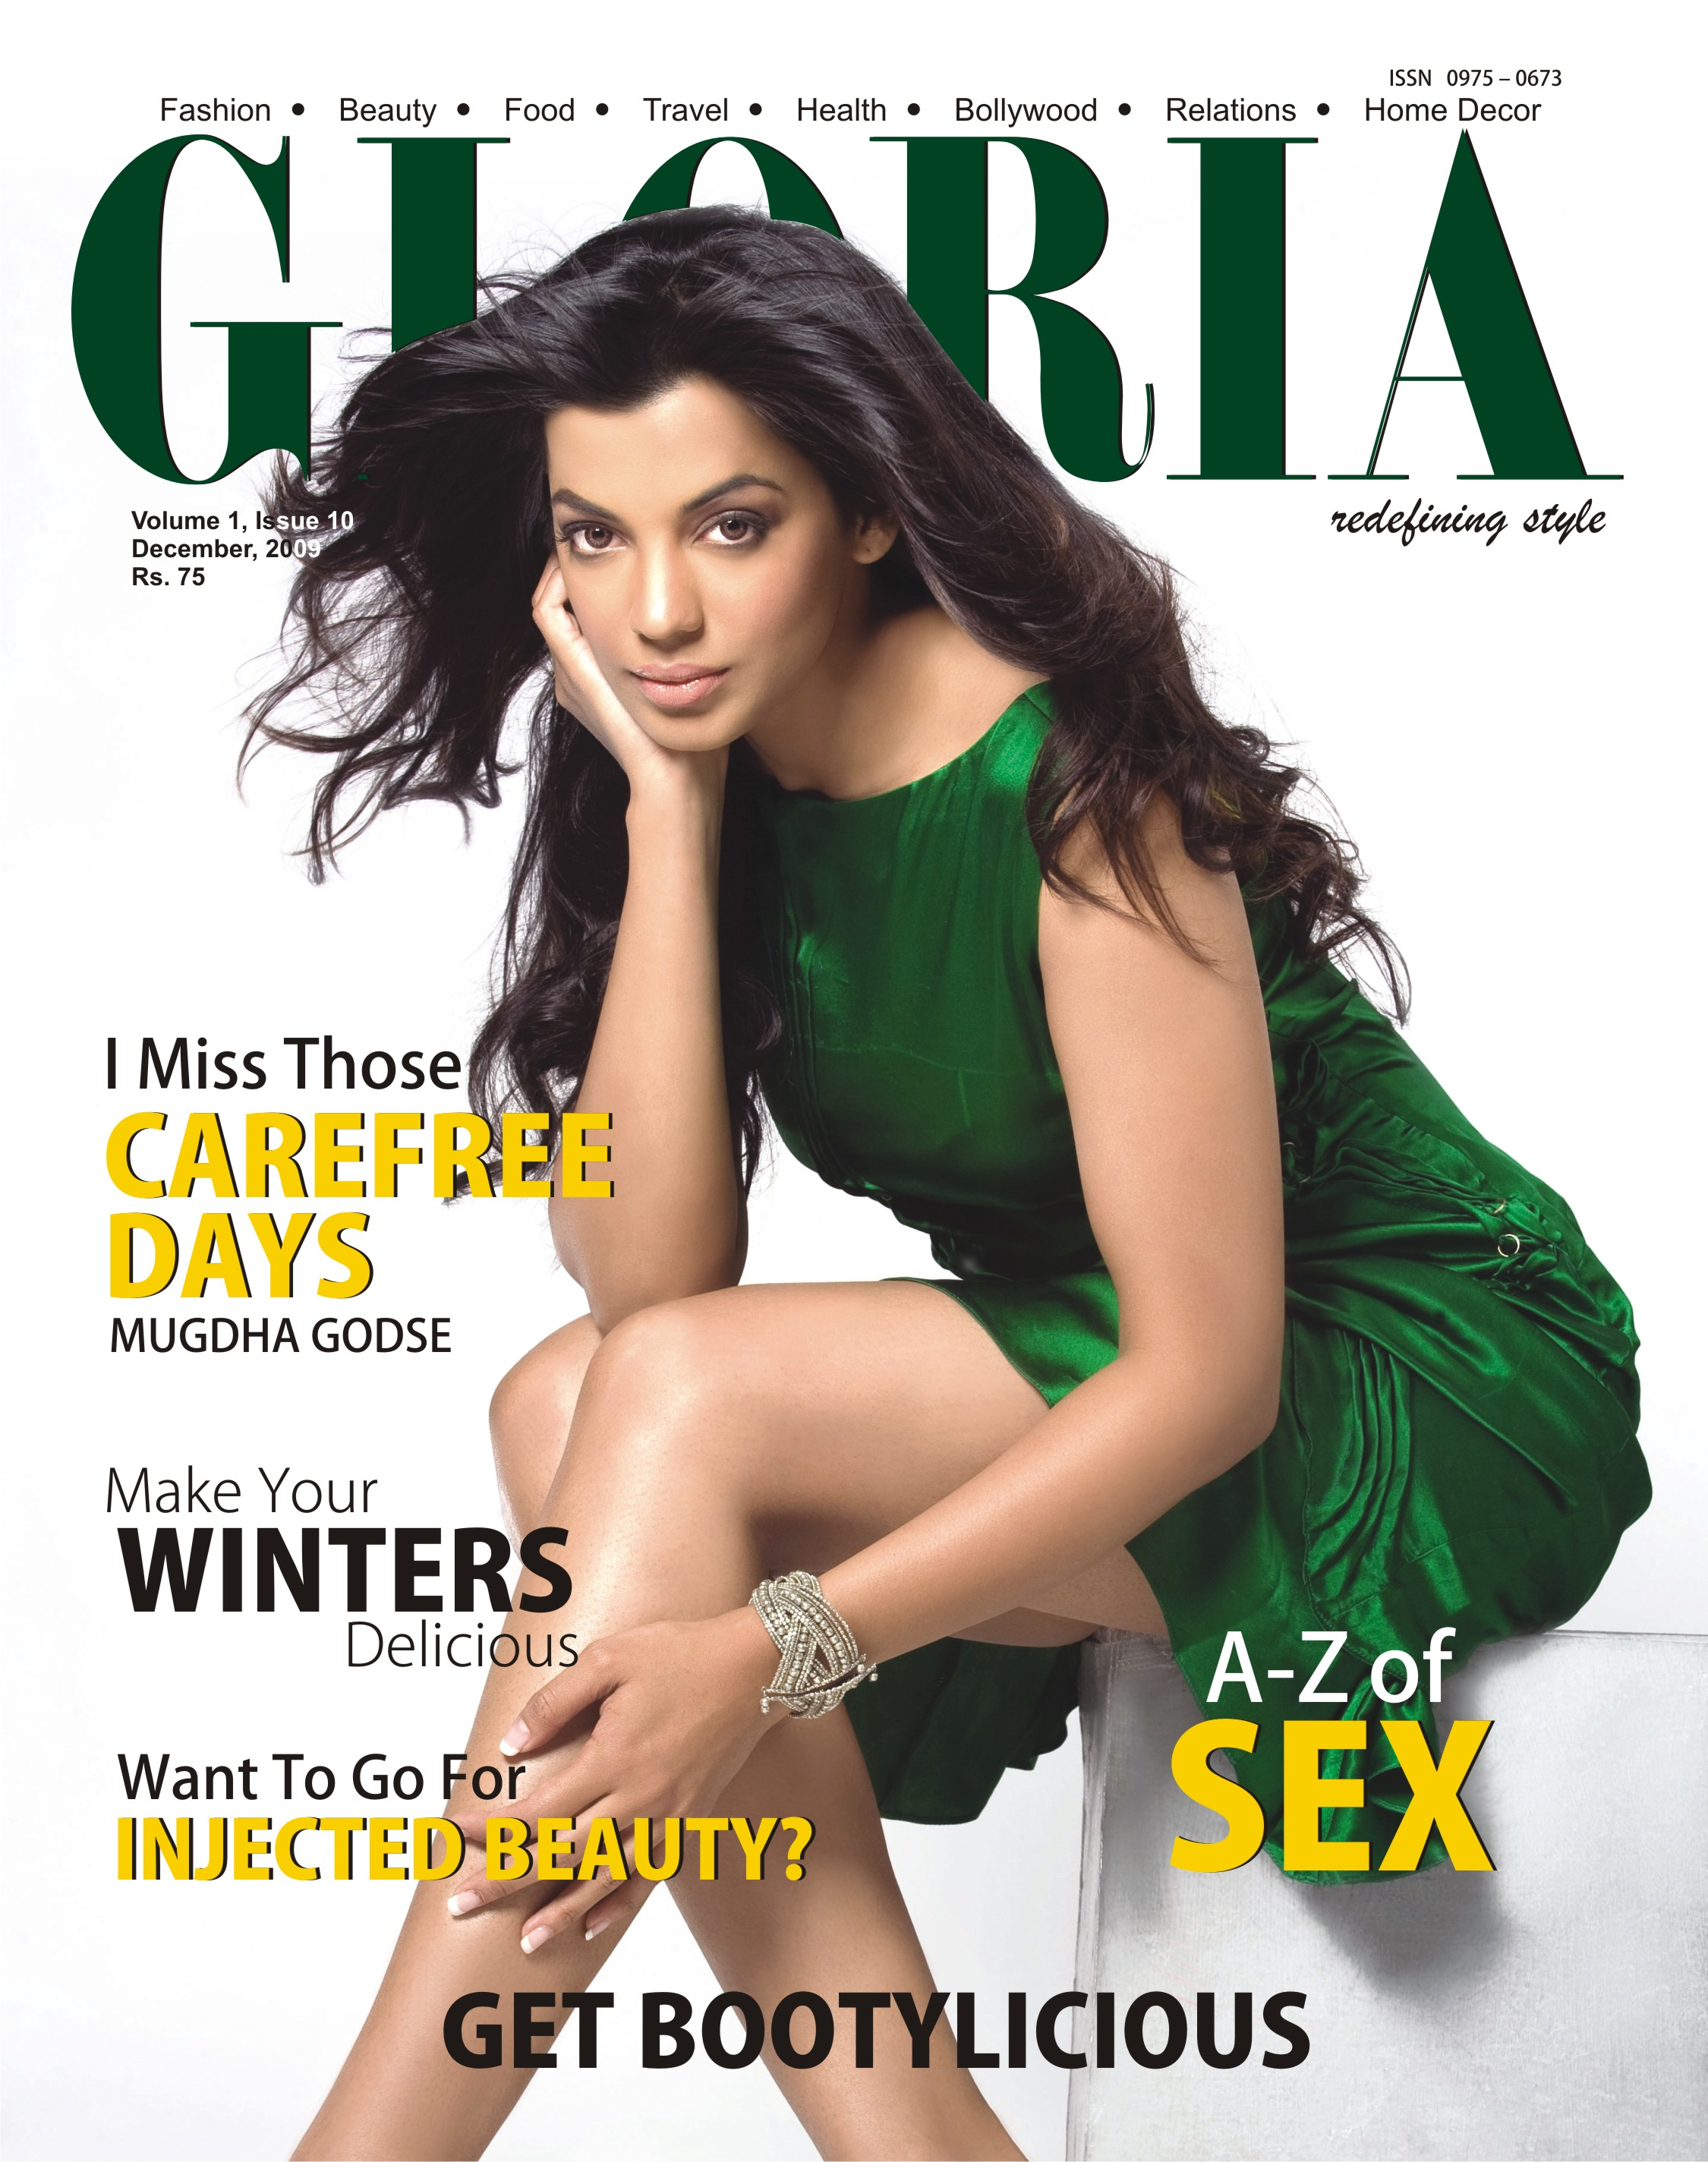 Read Gloria Fashion And Lifestyle Magazine December 2011 Cover Online Free Yudu